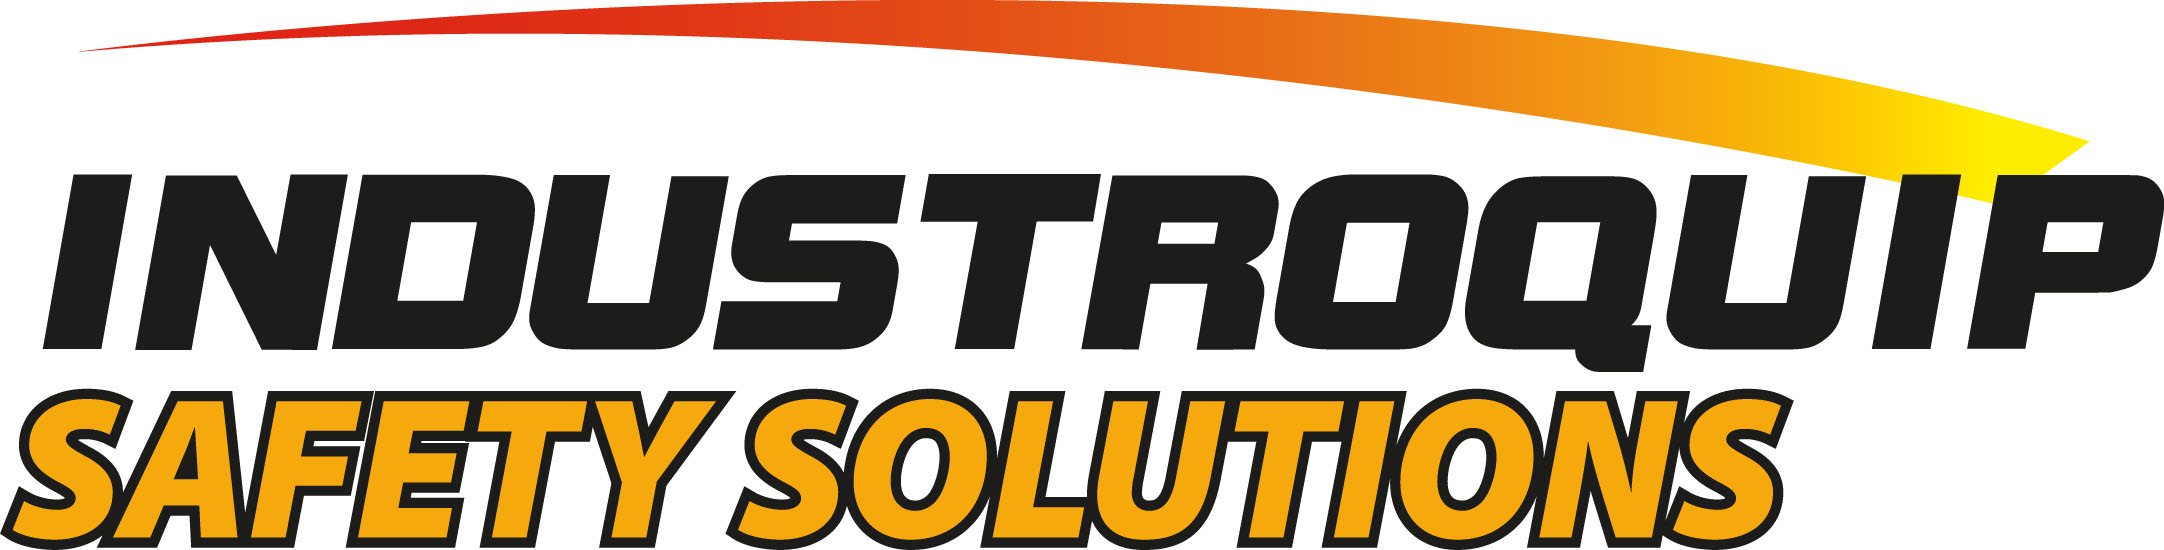 INDUSTROQUIP-safety-solutions-black.jpg